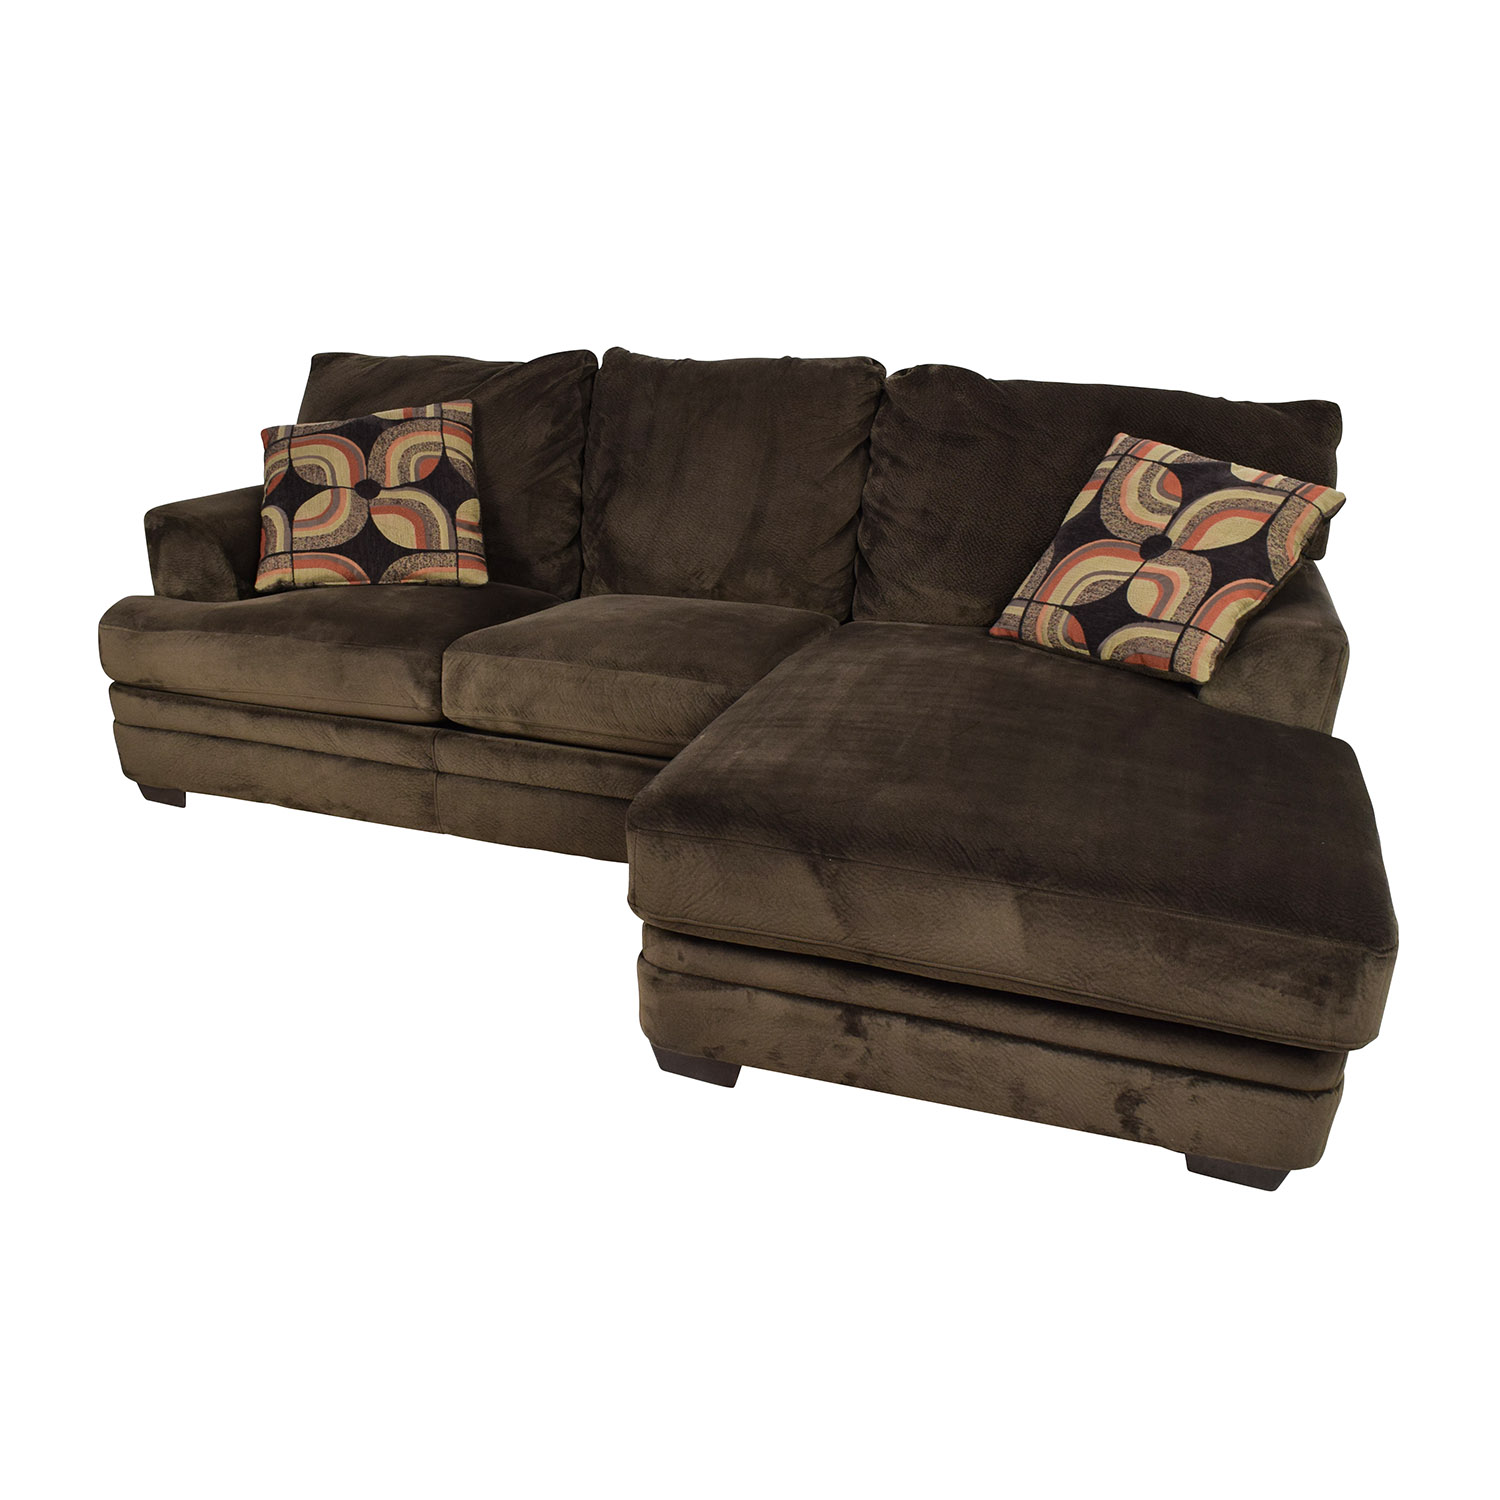 Remarkable 43 Off Bobs Discount Furniture Bobs Furniture Charisma Sectional Sofa Sofas Dailytribune Chair Design For Home Dailytribuneorg